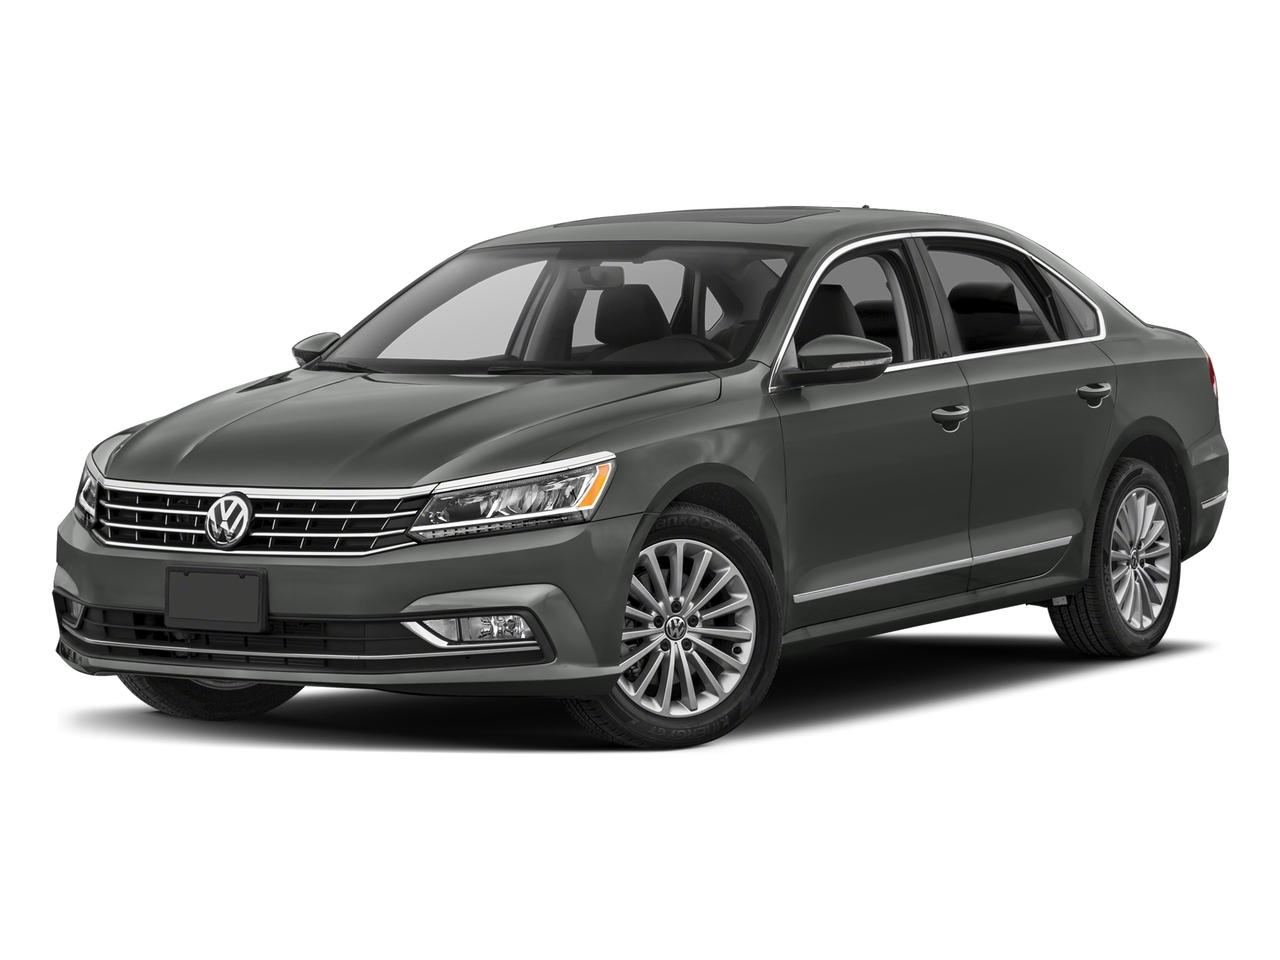 2018 Volkswagen Passat Vehicle Photo in Baton Rouge, LA 70809